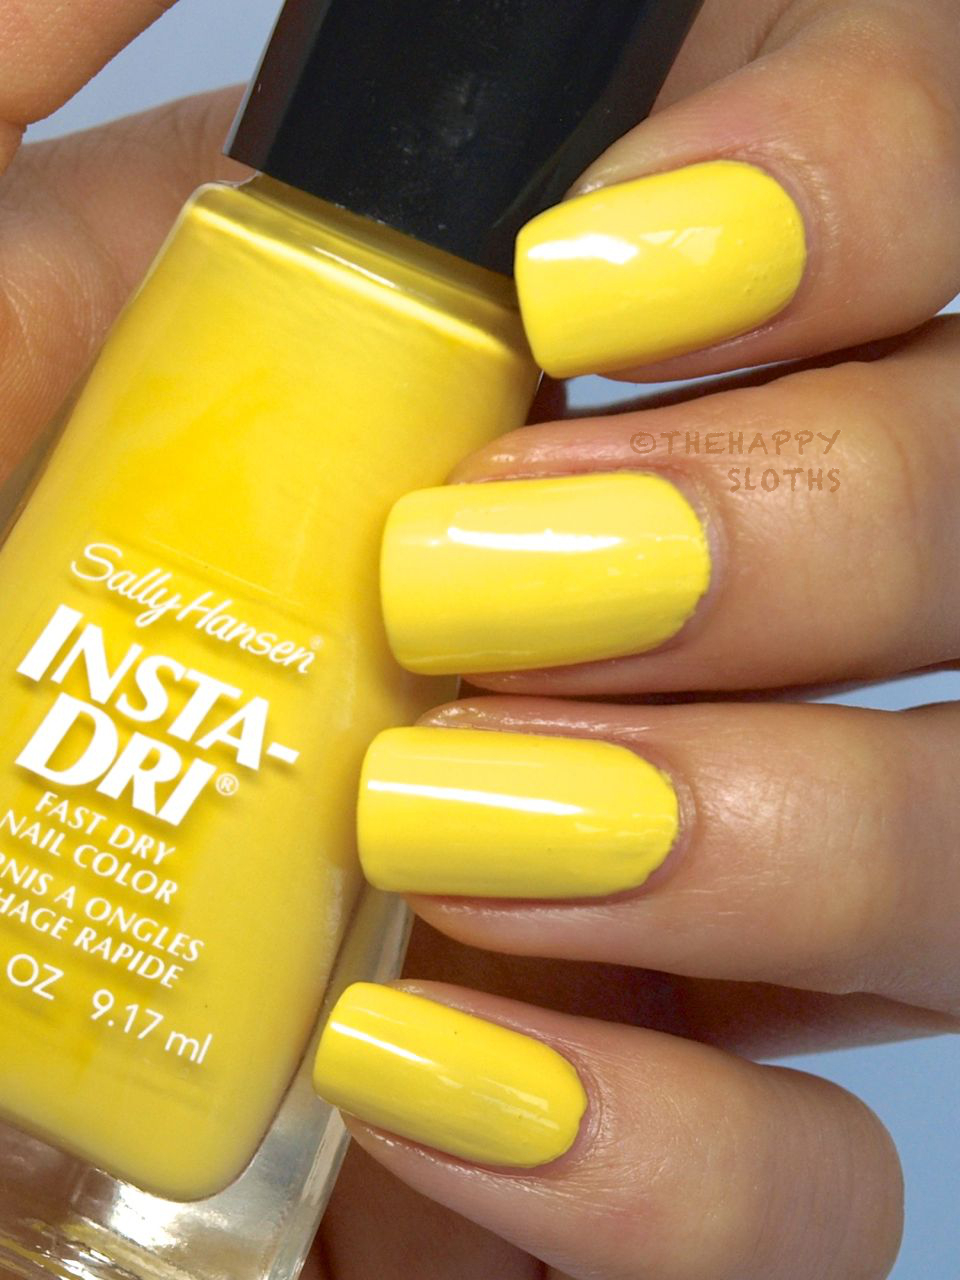 Sally Hansen Insta-Dri Moroccan Spice Market Collection Nail Polish in Sizzlin Saffron: Review and Swatches